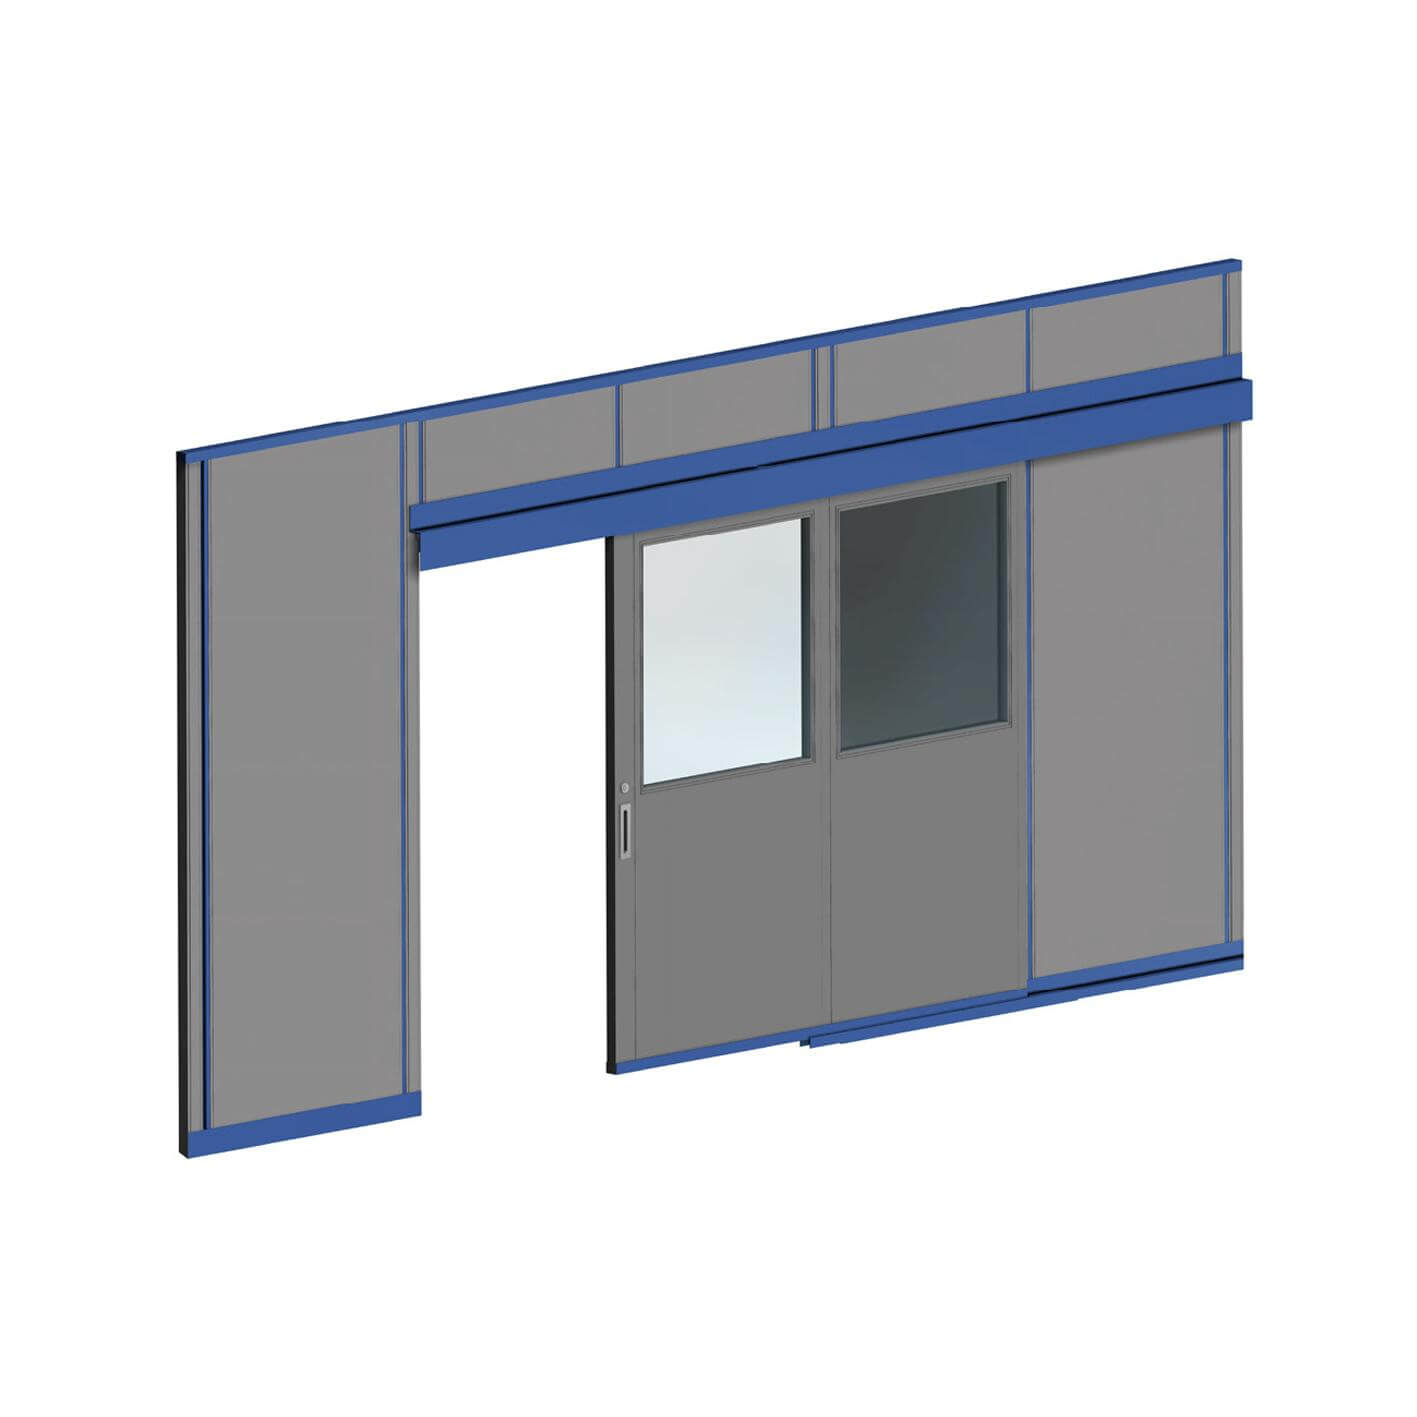 Commercial partitioning, Elan sliding doors